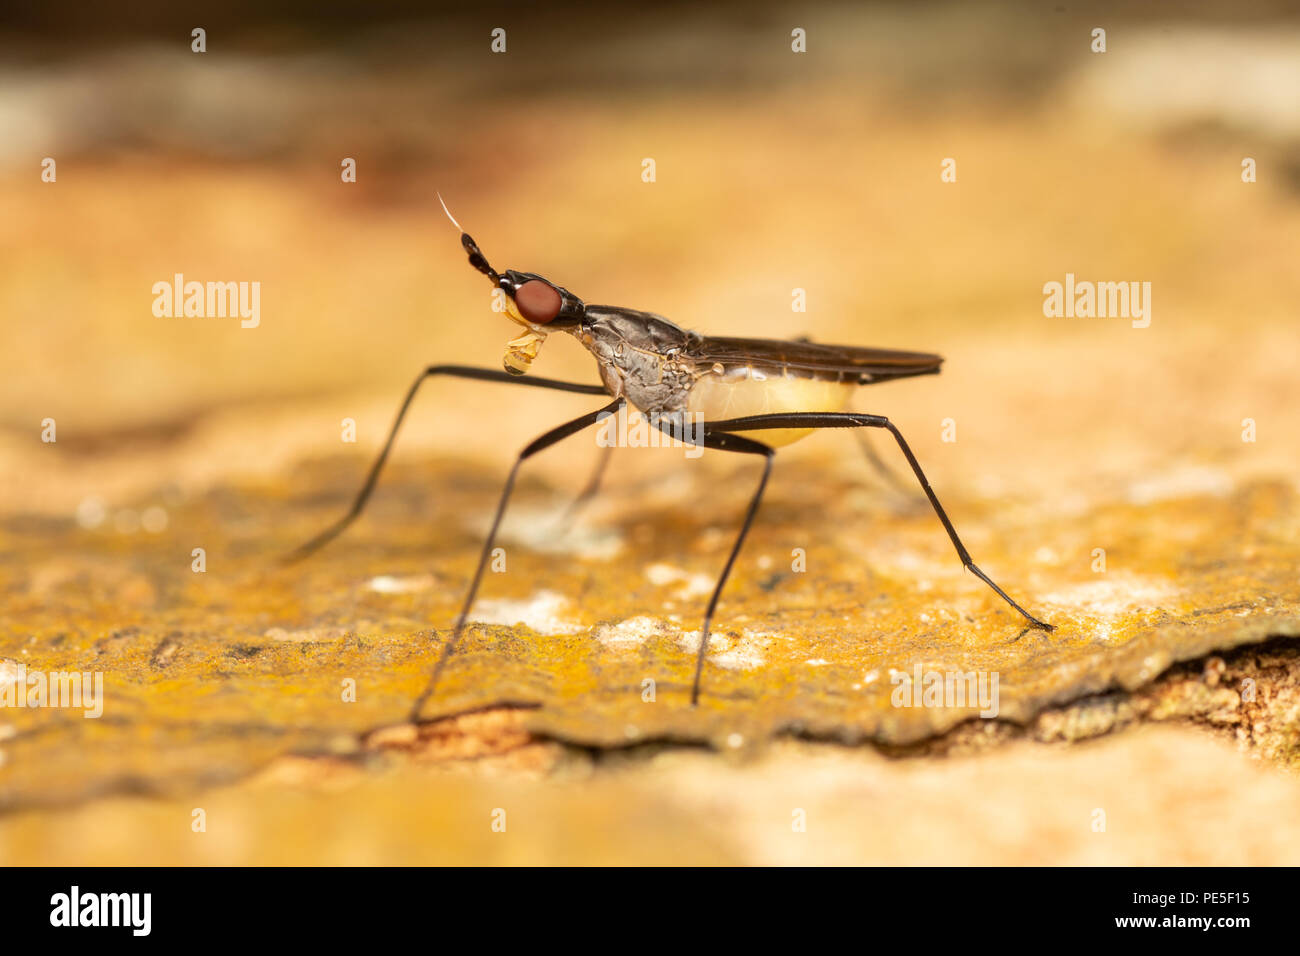 Neriidae is a family of true flies (Diptera) commonly known as banana stalk flies or stilt-legged flies. Stock Photo